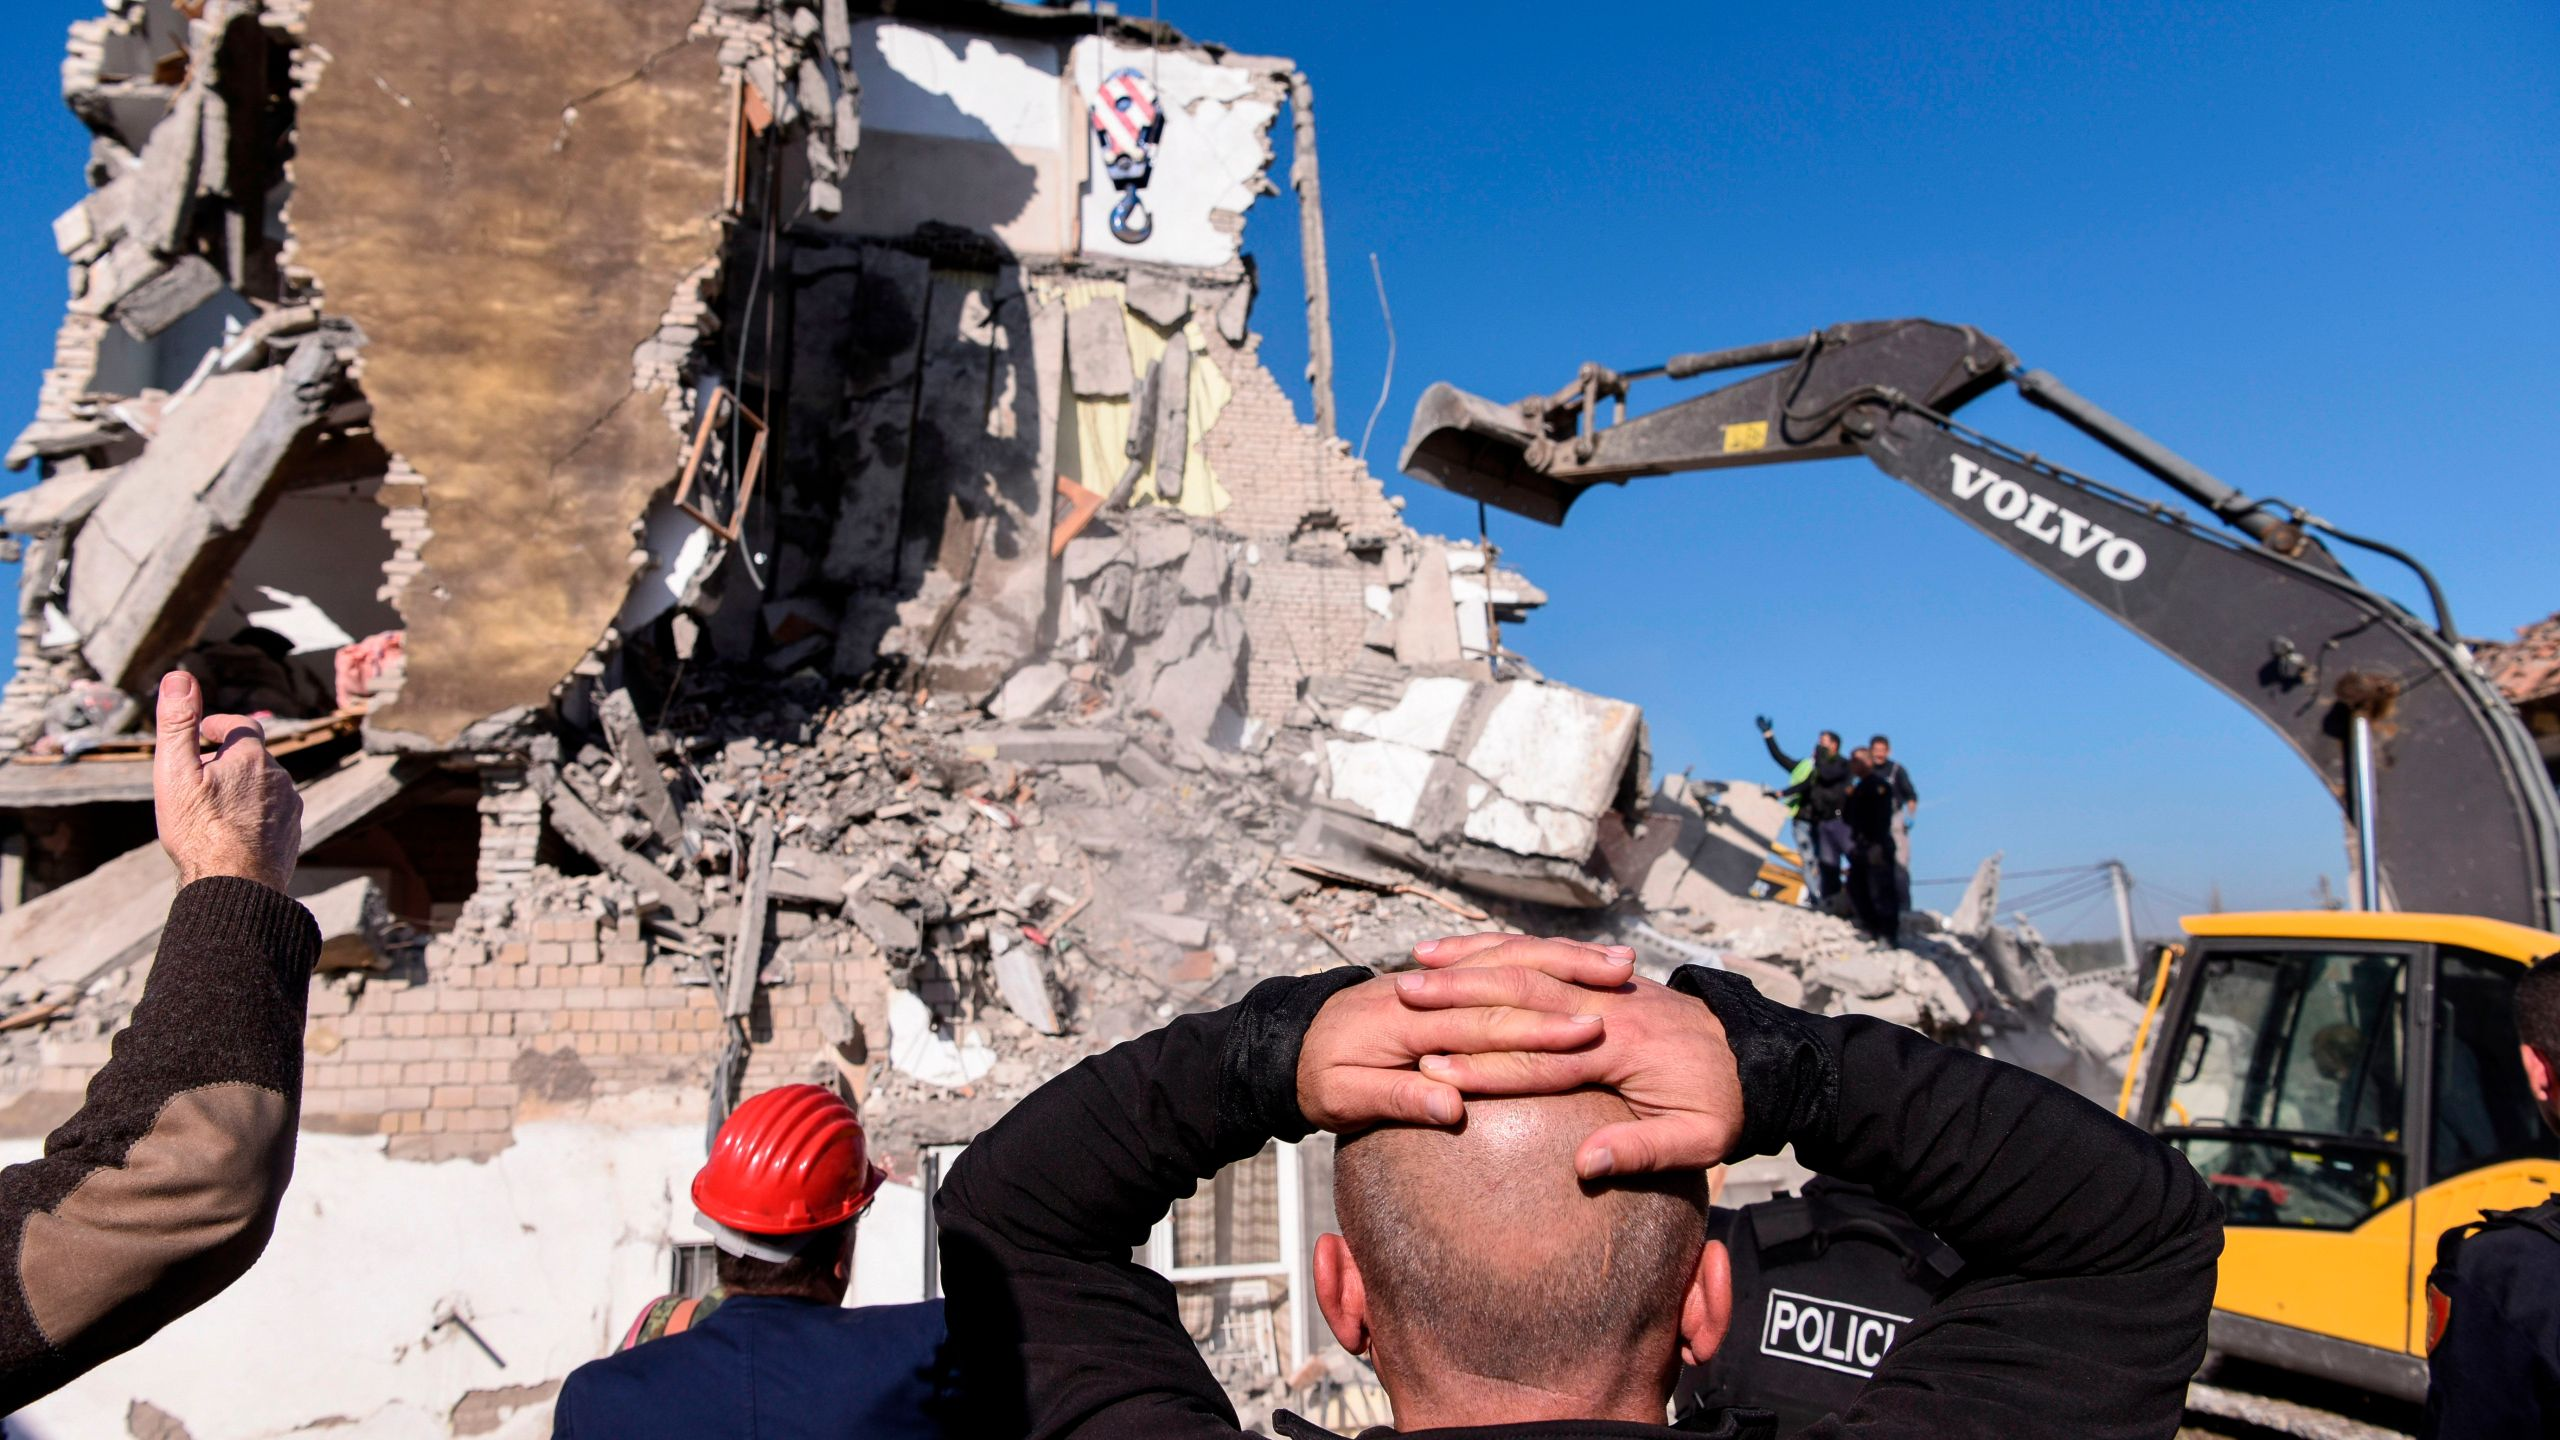 Rescue workers remove debris from a collapsed building in Thumane, northwest of capital Tirana, after an earthquake hit Albania, on November 26, 2019. (Credit: ARMEND NIMANI/AFP via Getty Images)